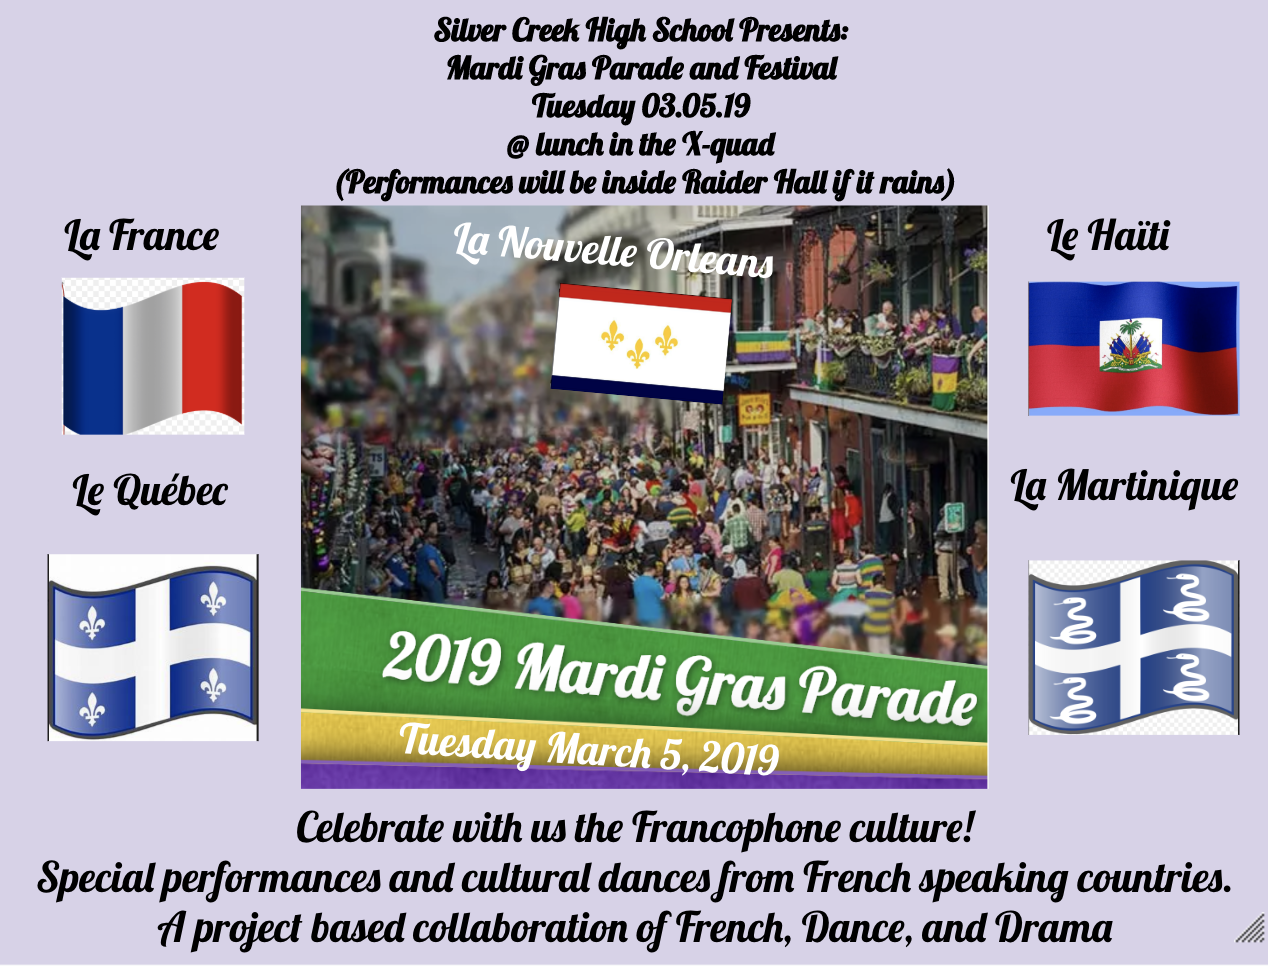 Mardi Gras Parade and Festival 03/05/19